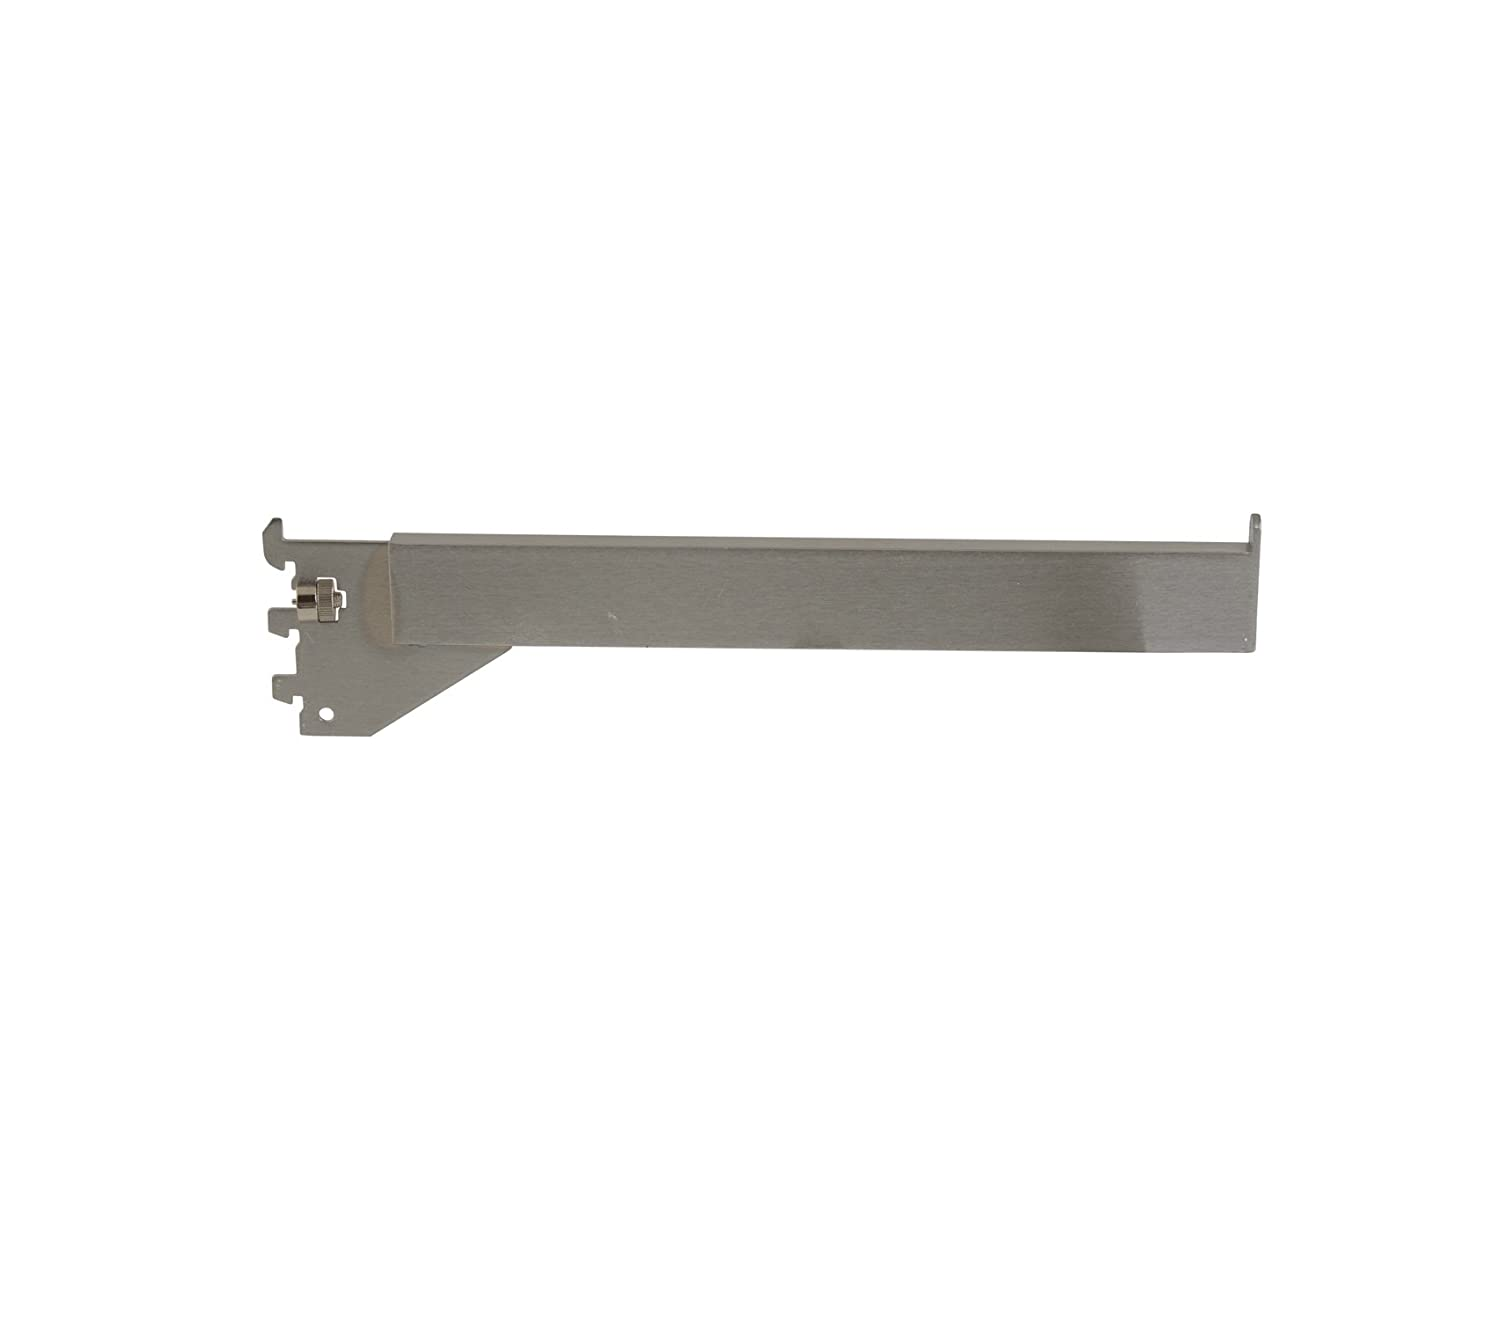 Satin Chrome Finish Econoco RDW//12-SC Tubing Straight Arm for Mounted or Recessed Standard 12 Pack of 24 Rectangular